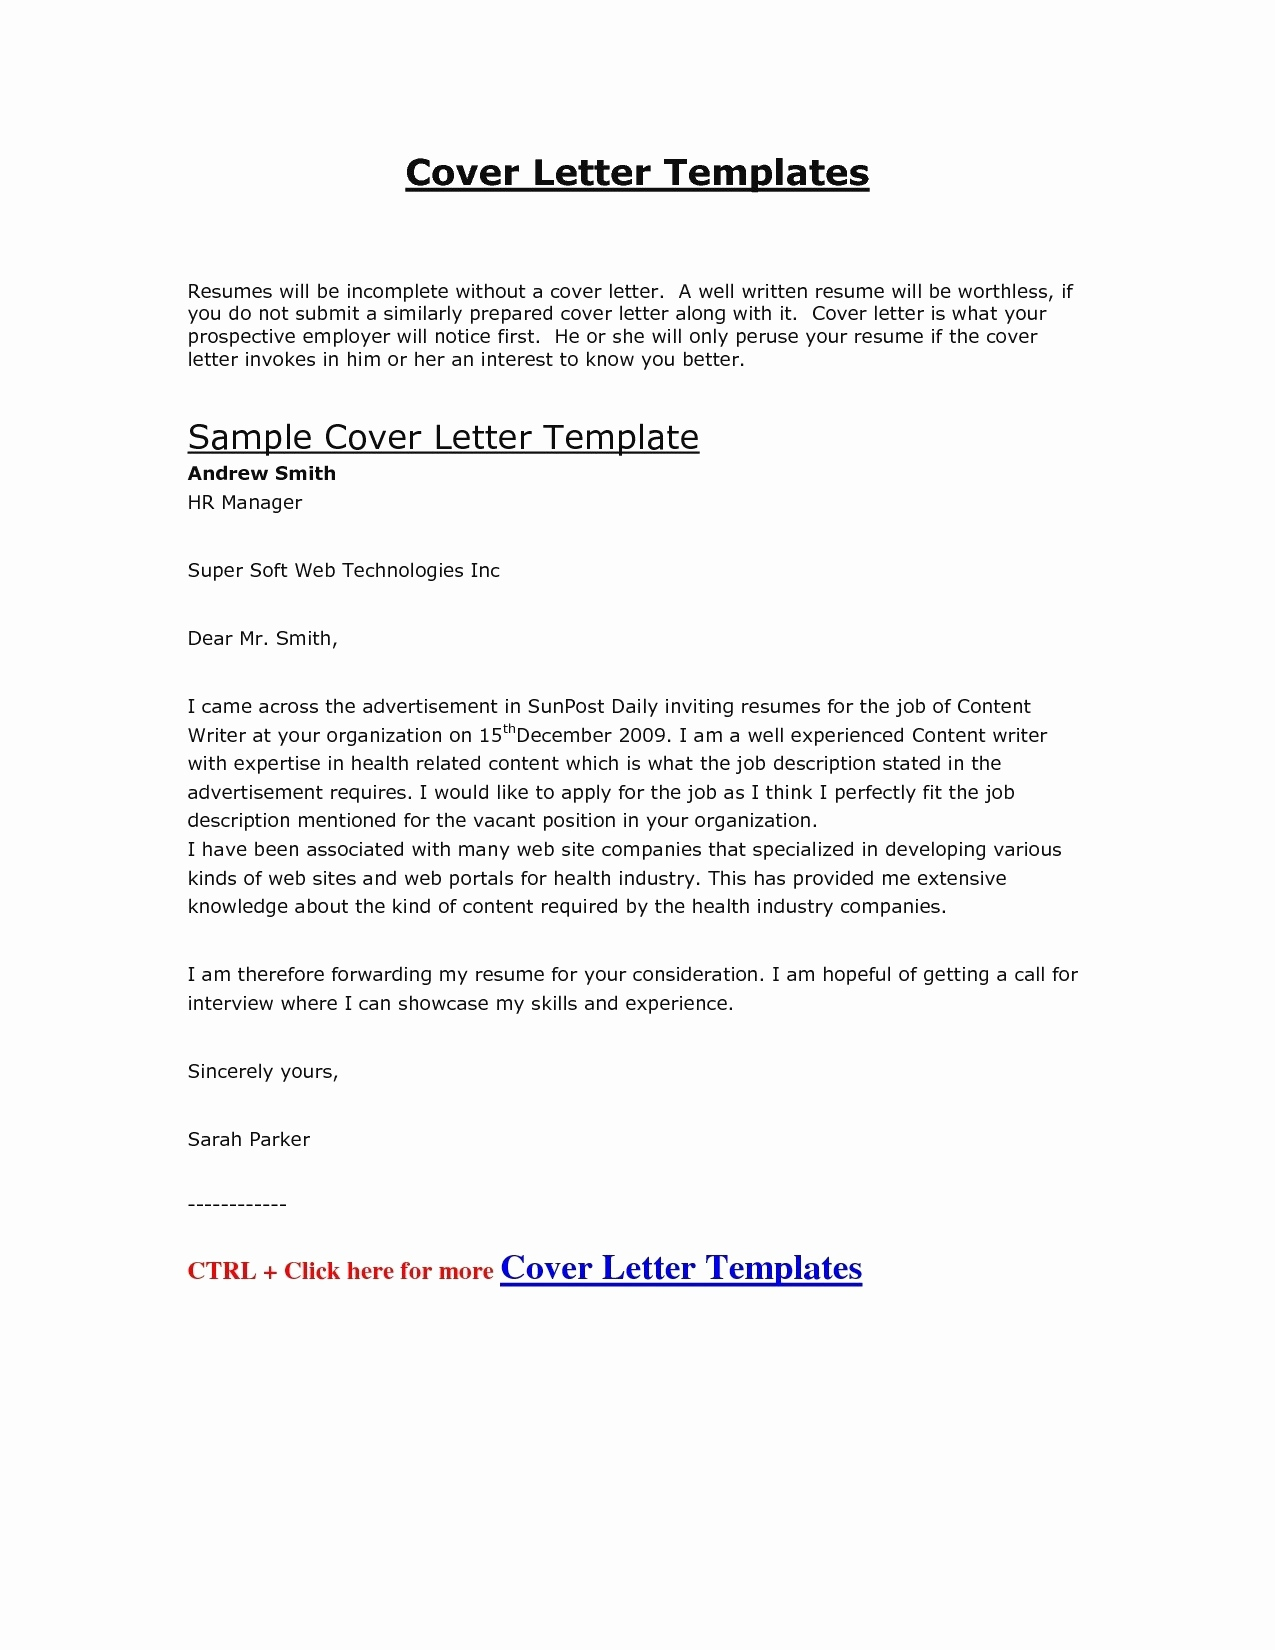 great cover letter examples sample cover letter template for application samples 22018